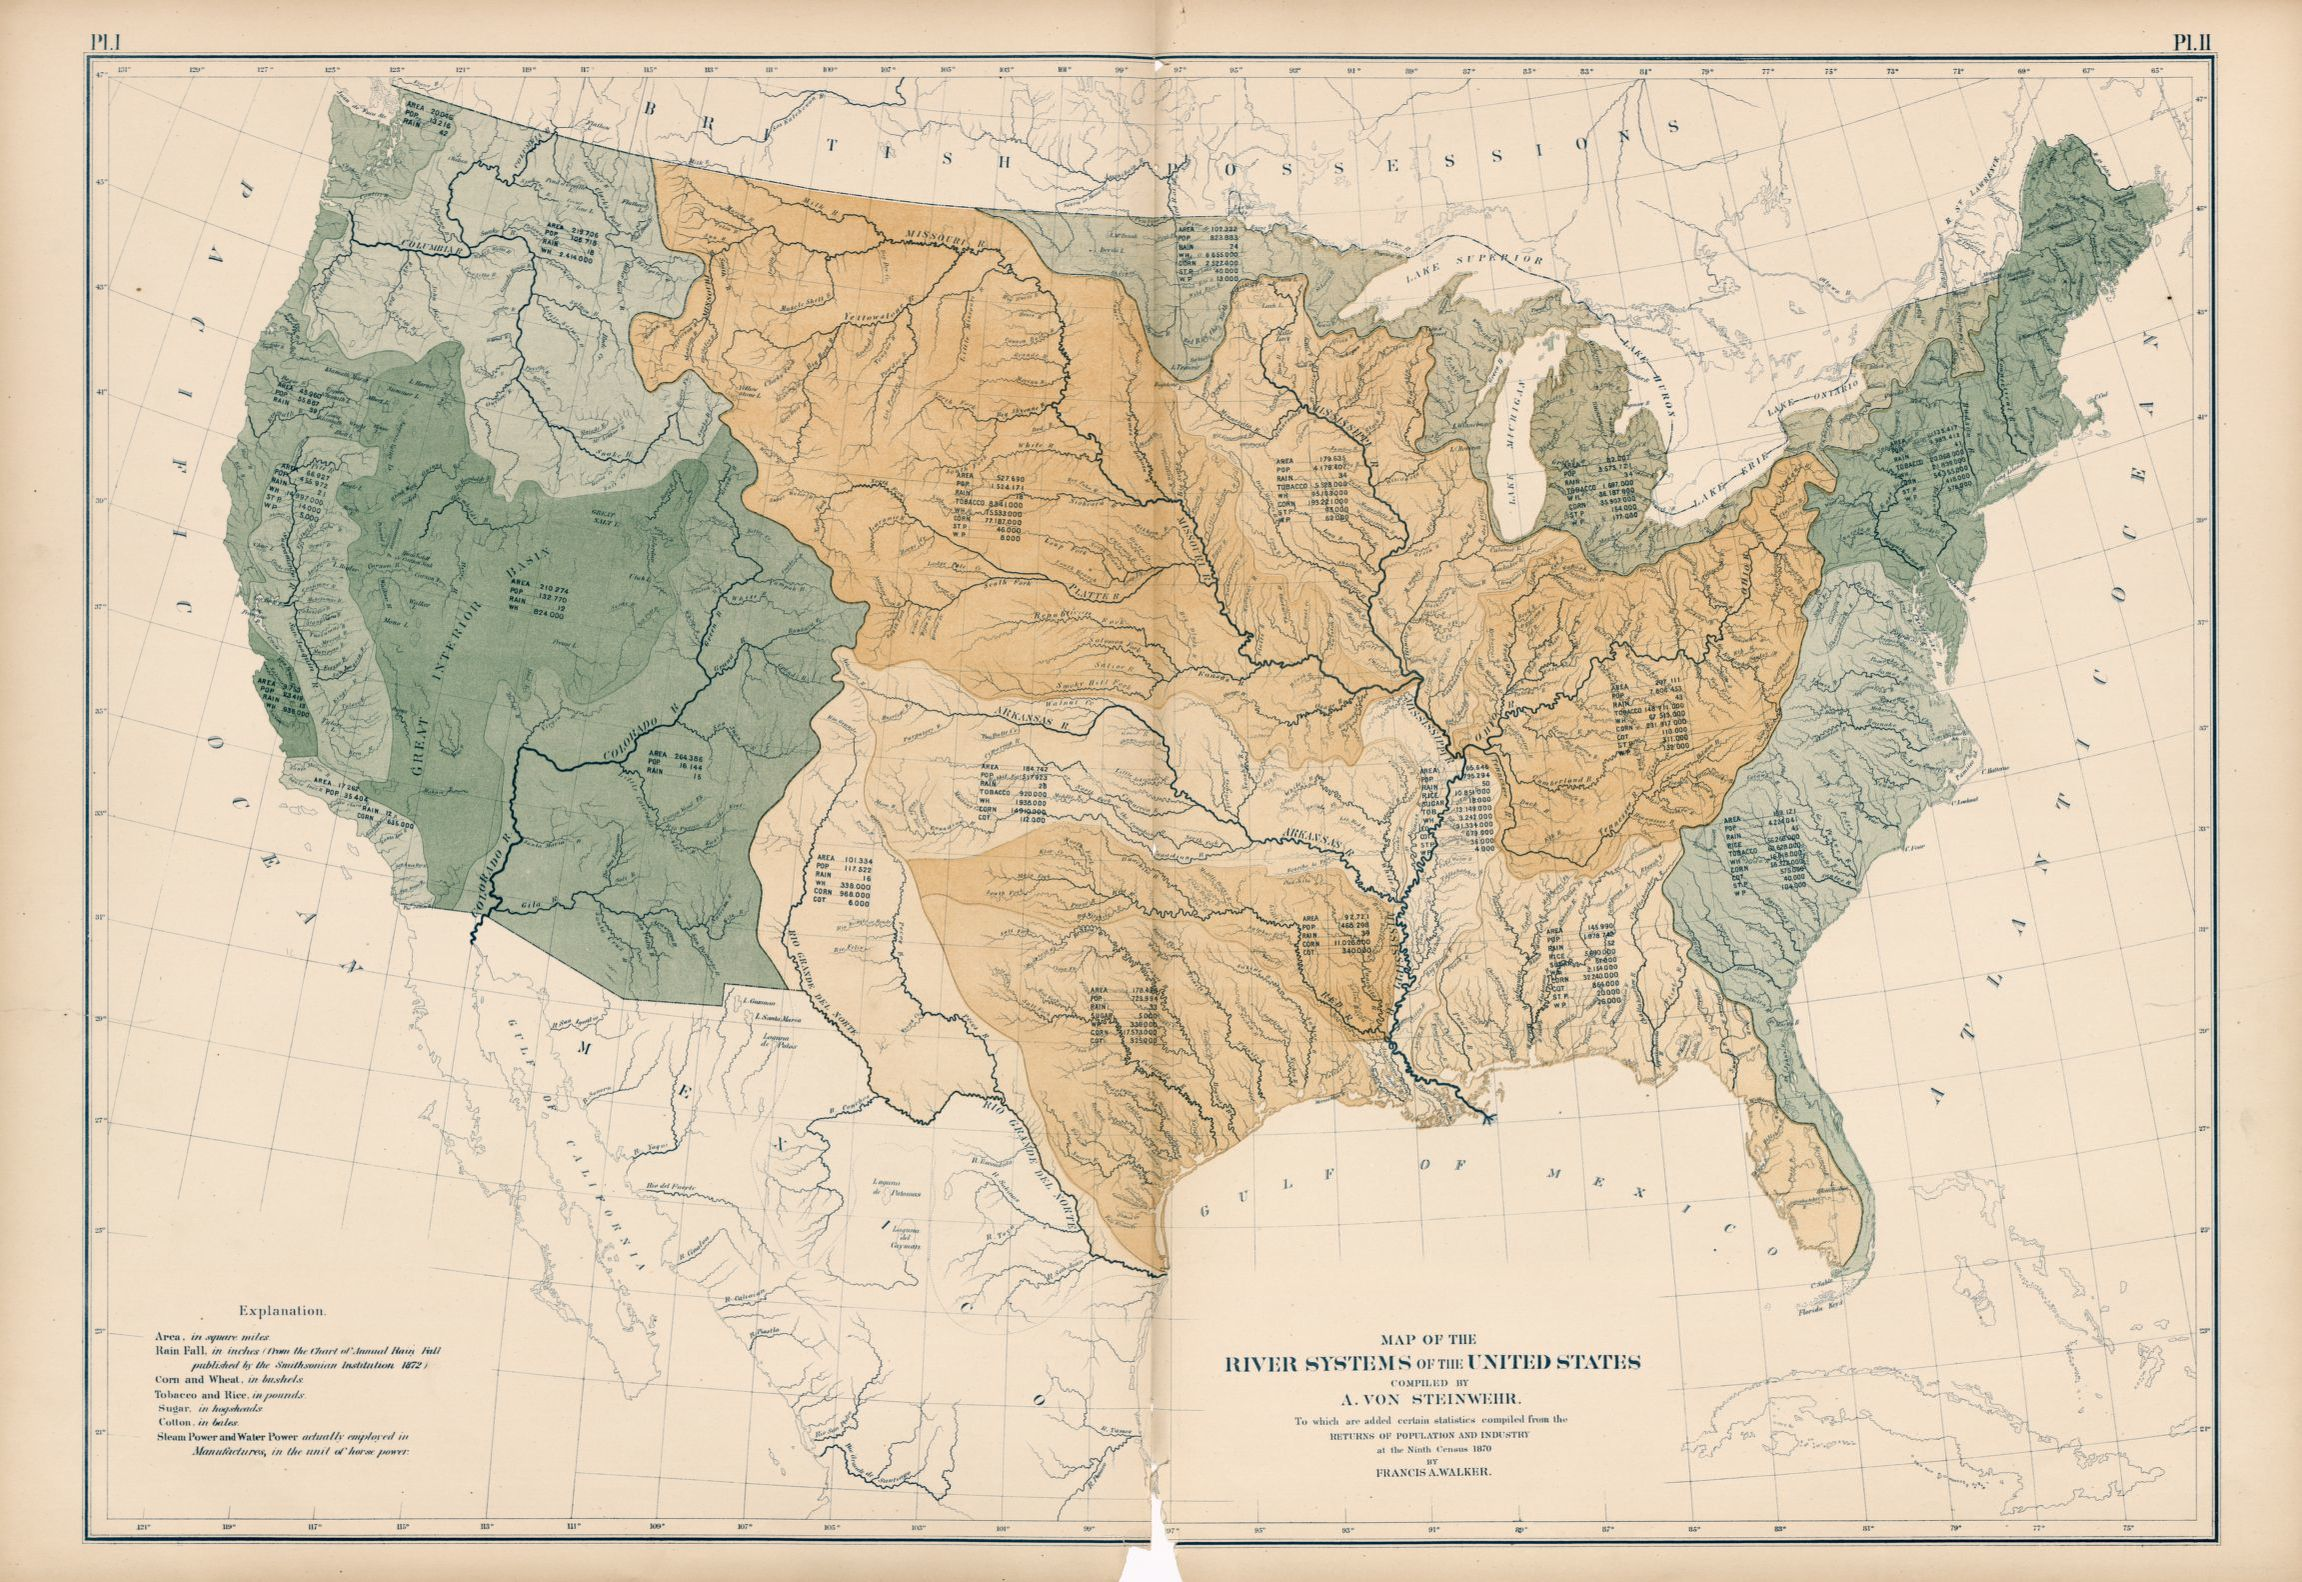 Or select from any of the 50 states for detailed. Map Of The River Systems Of The United States Library Of Congress